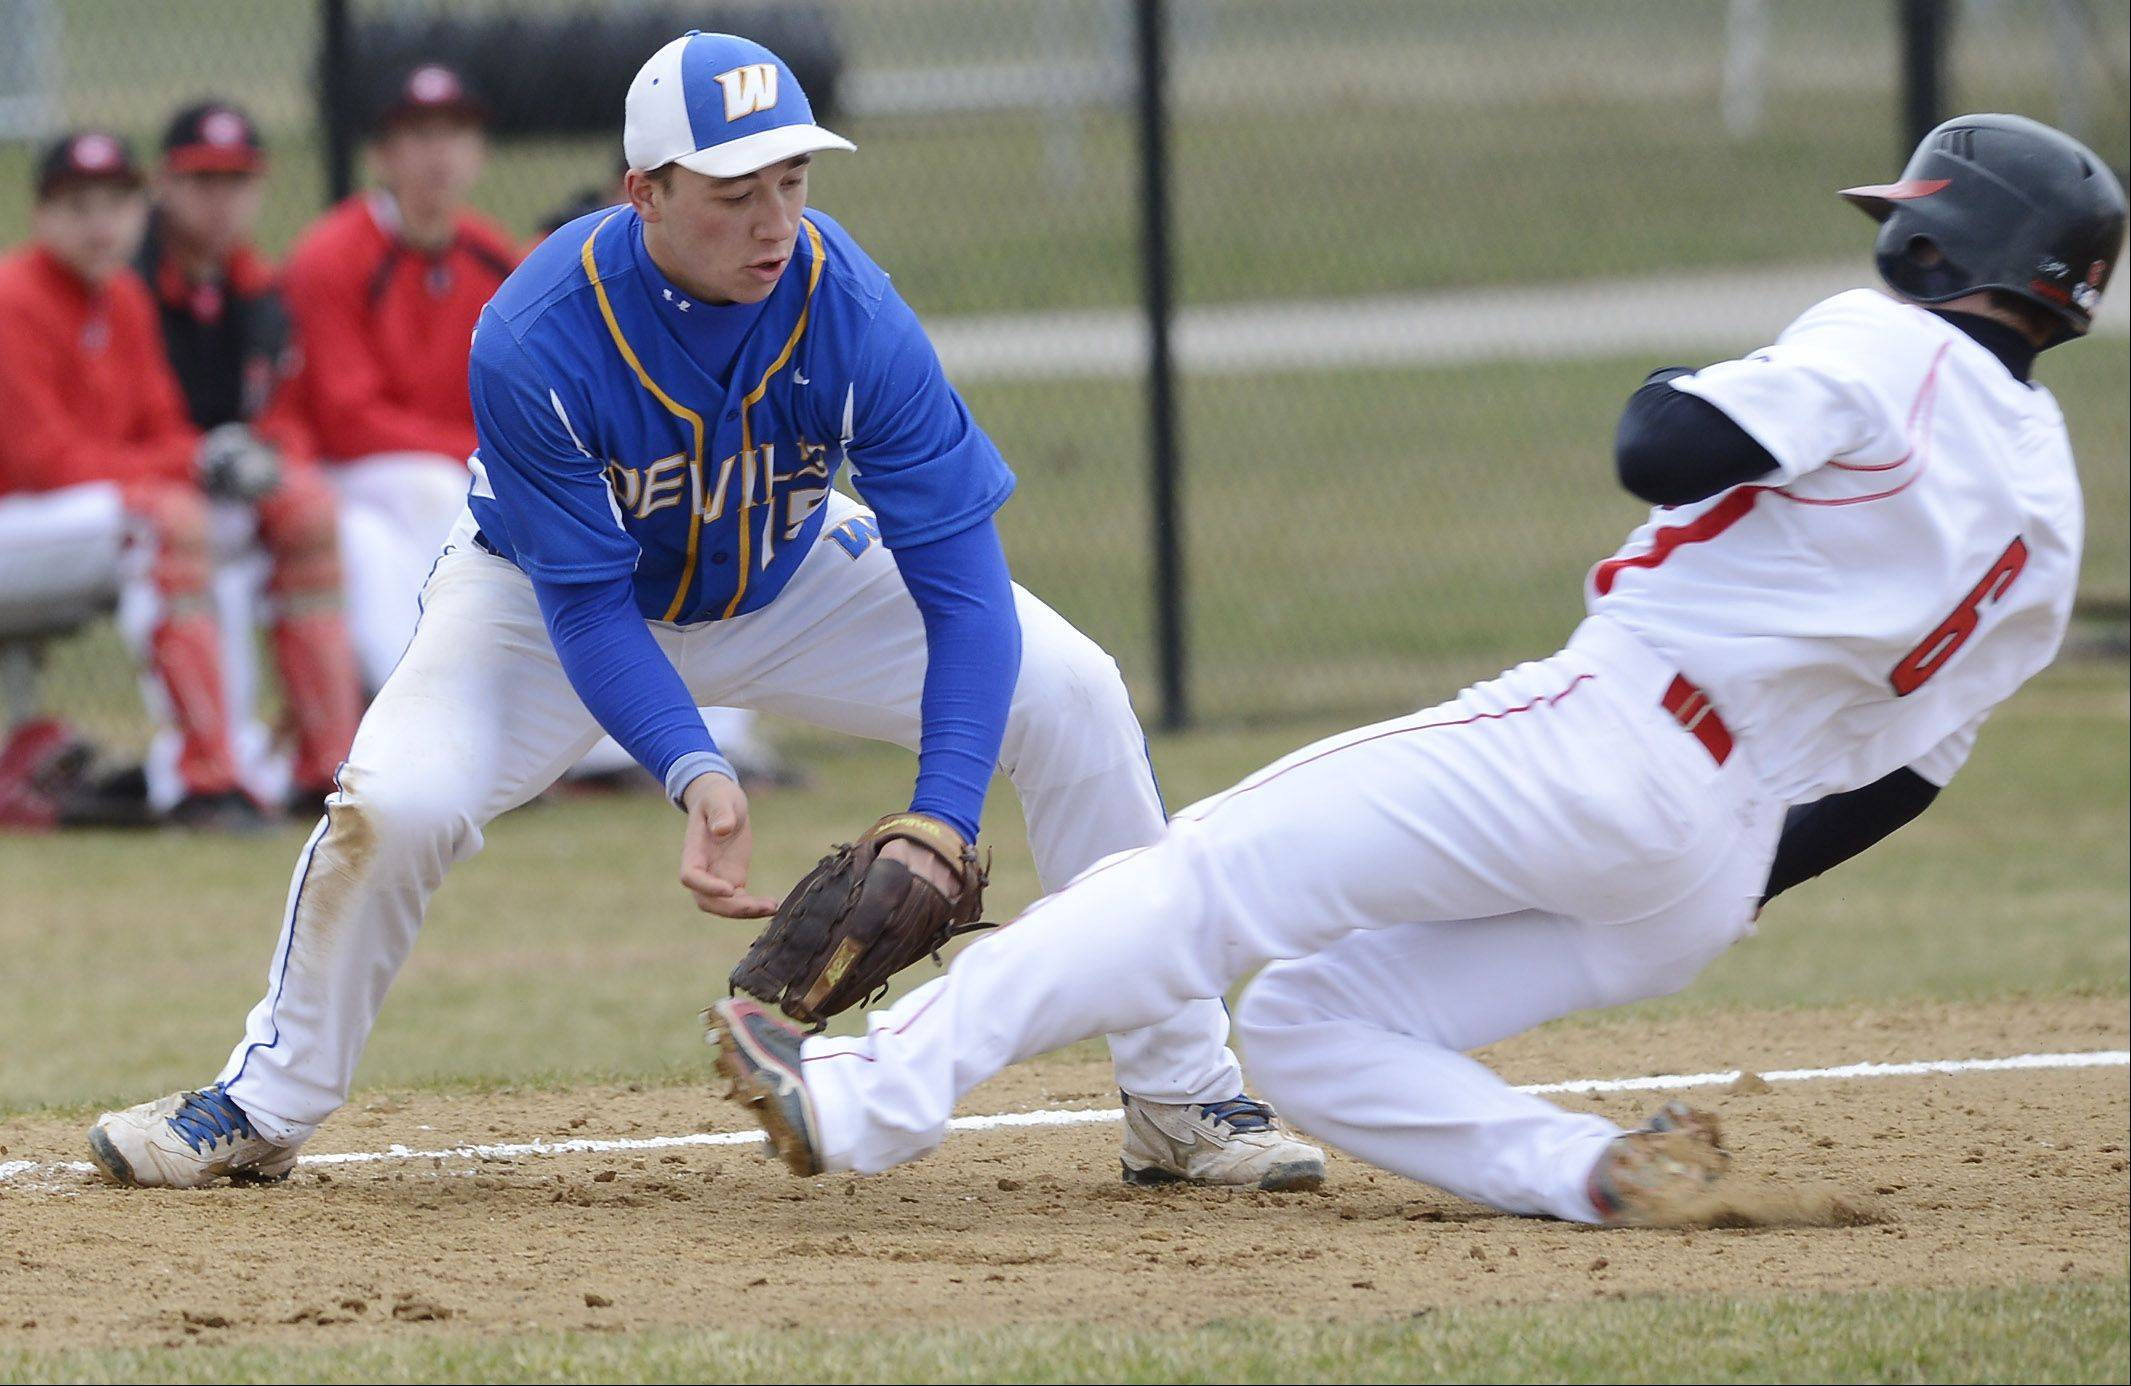 Warren third baseman Nick Orslini tags out Grant's Matt Paret on a fielder's choice during the fifth inning Saturday.